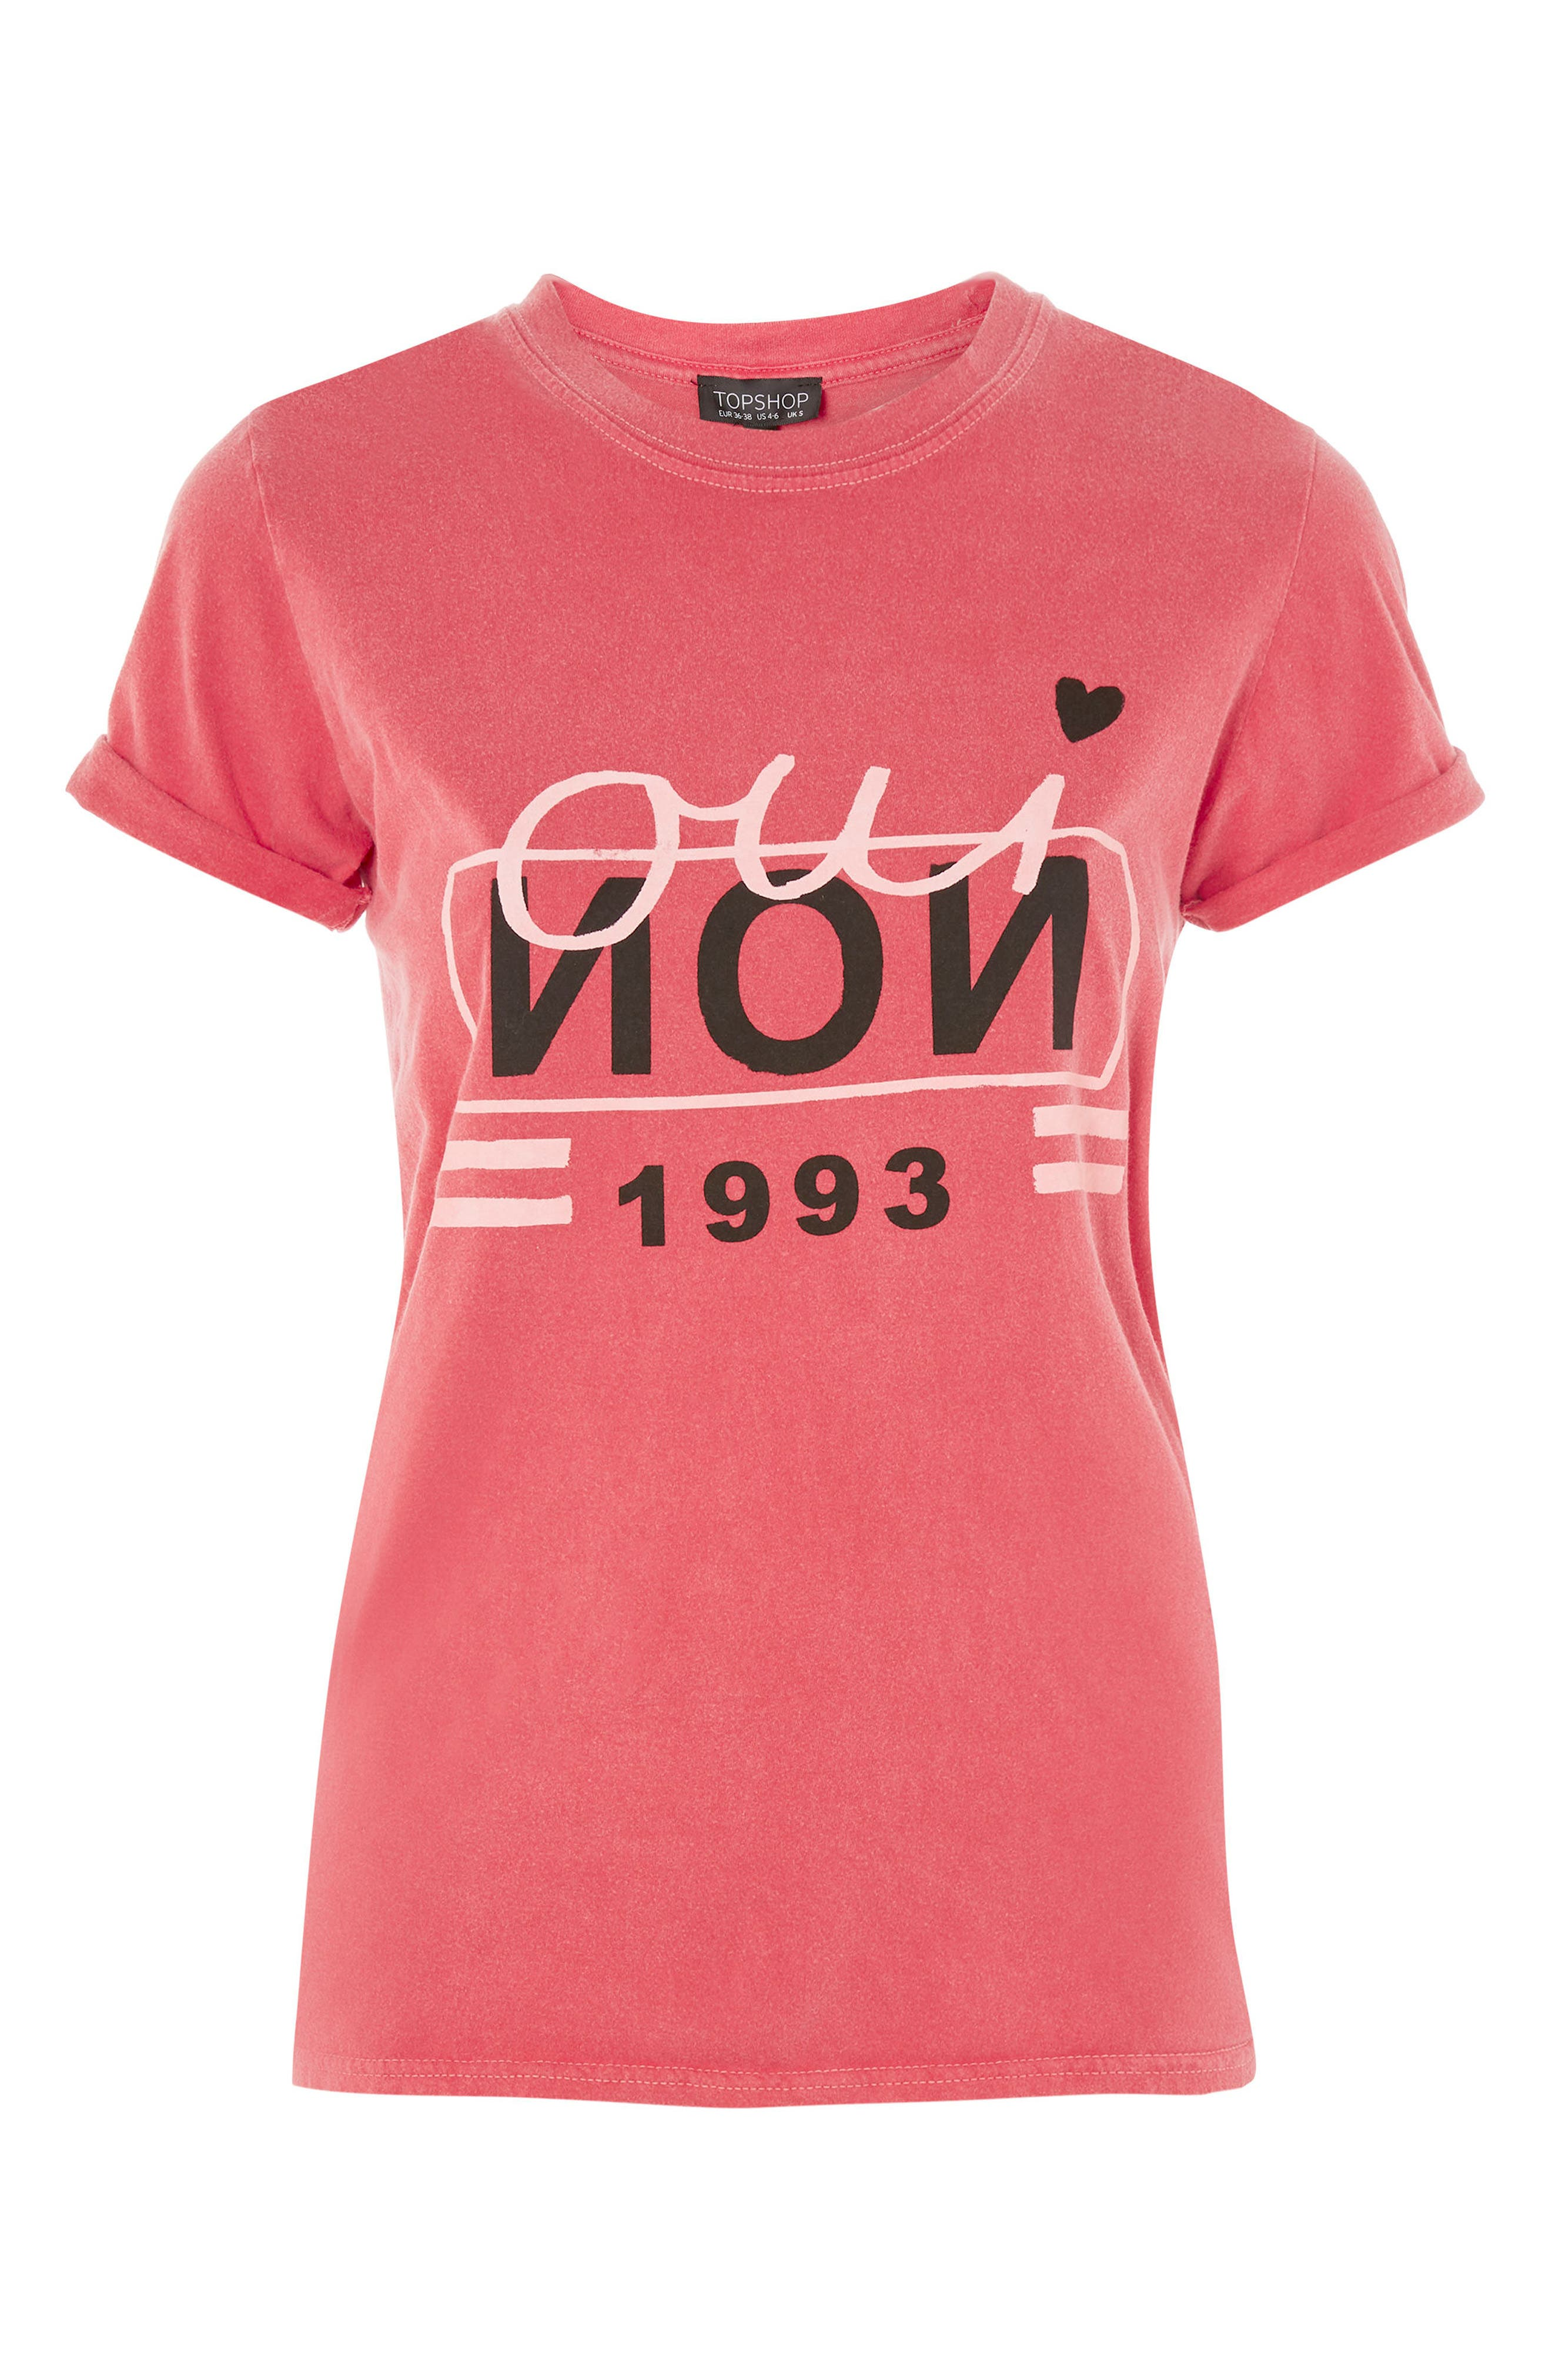 Oui Non 1993 Graphic Tee,                             Alternate thumbnail 4, color,                             Red